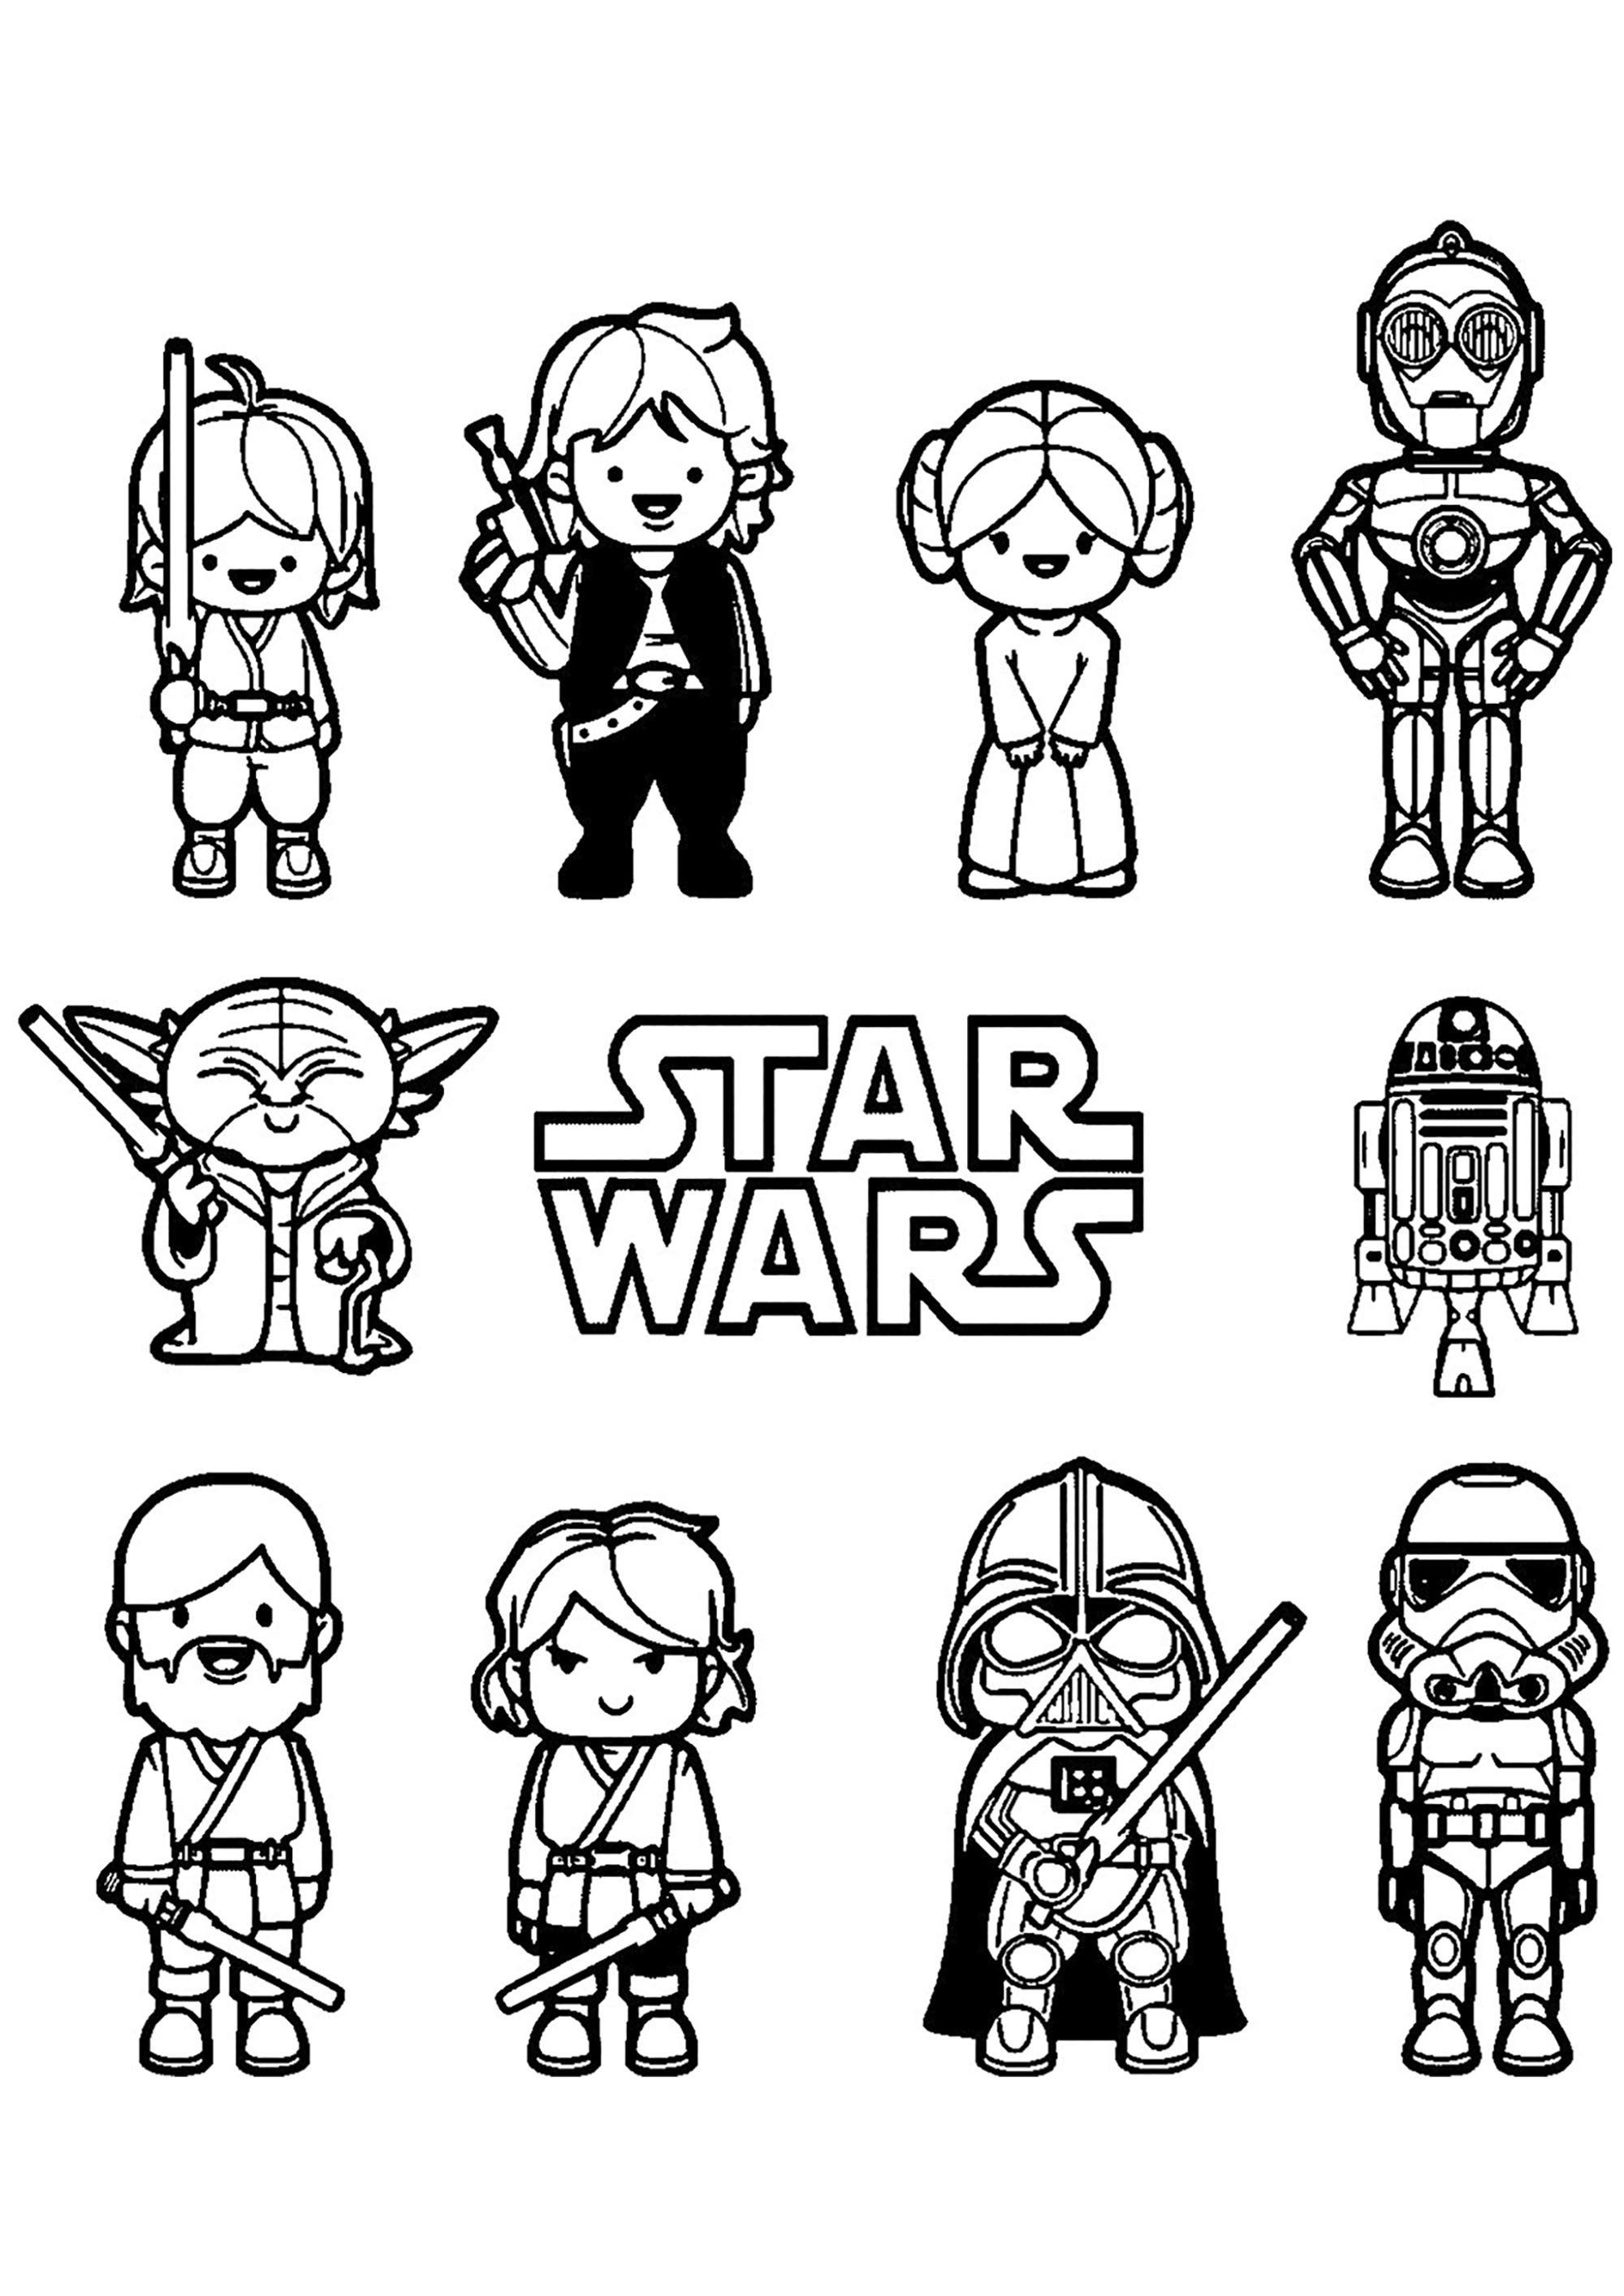 Star Wars Coloring Pages Beautiful Star Wars Coloring Einzigartig Star Wars Free To Color Fo Star Wars Coloring Sheet Star Wars Coloring Book Star Wars Cartoon